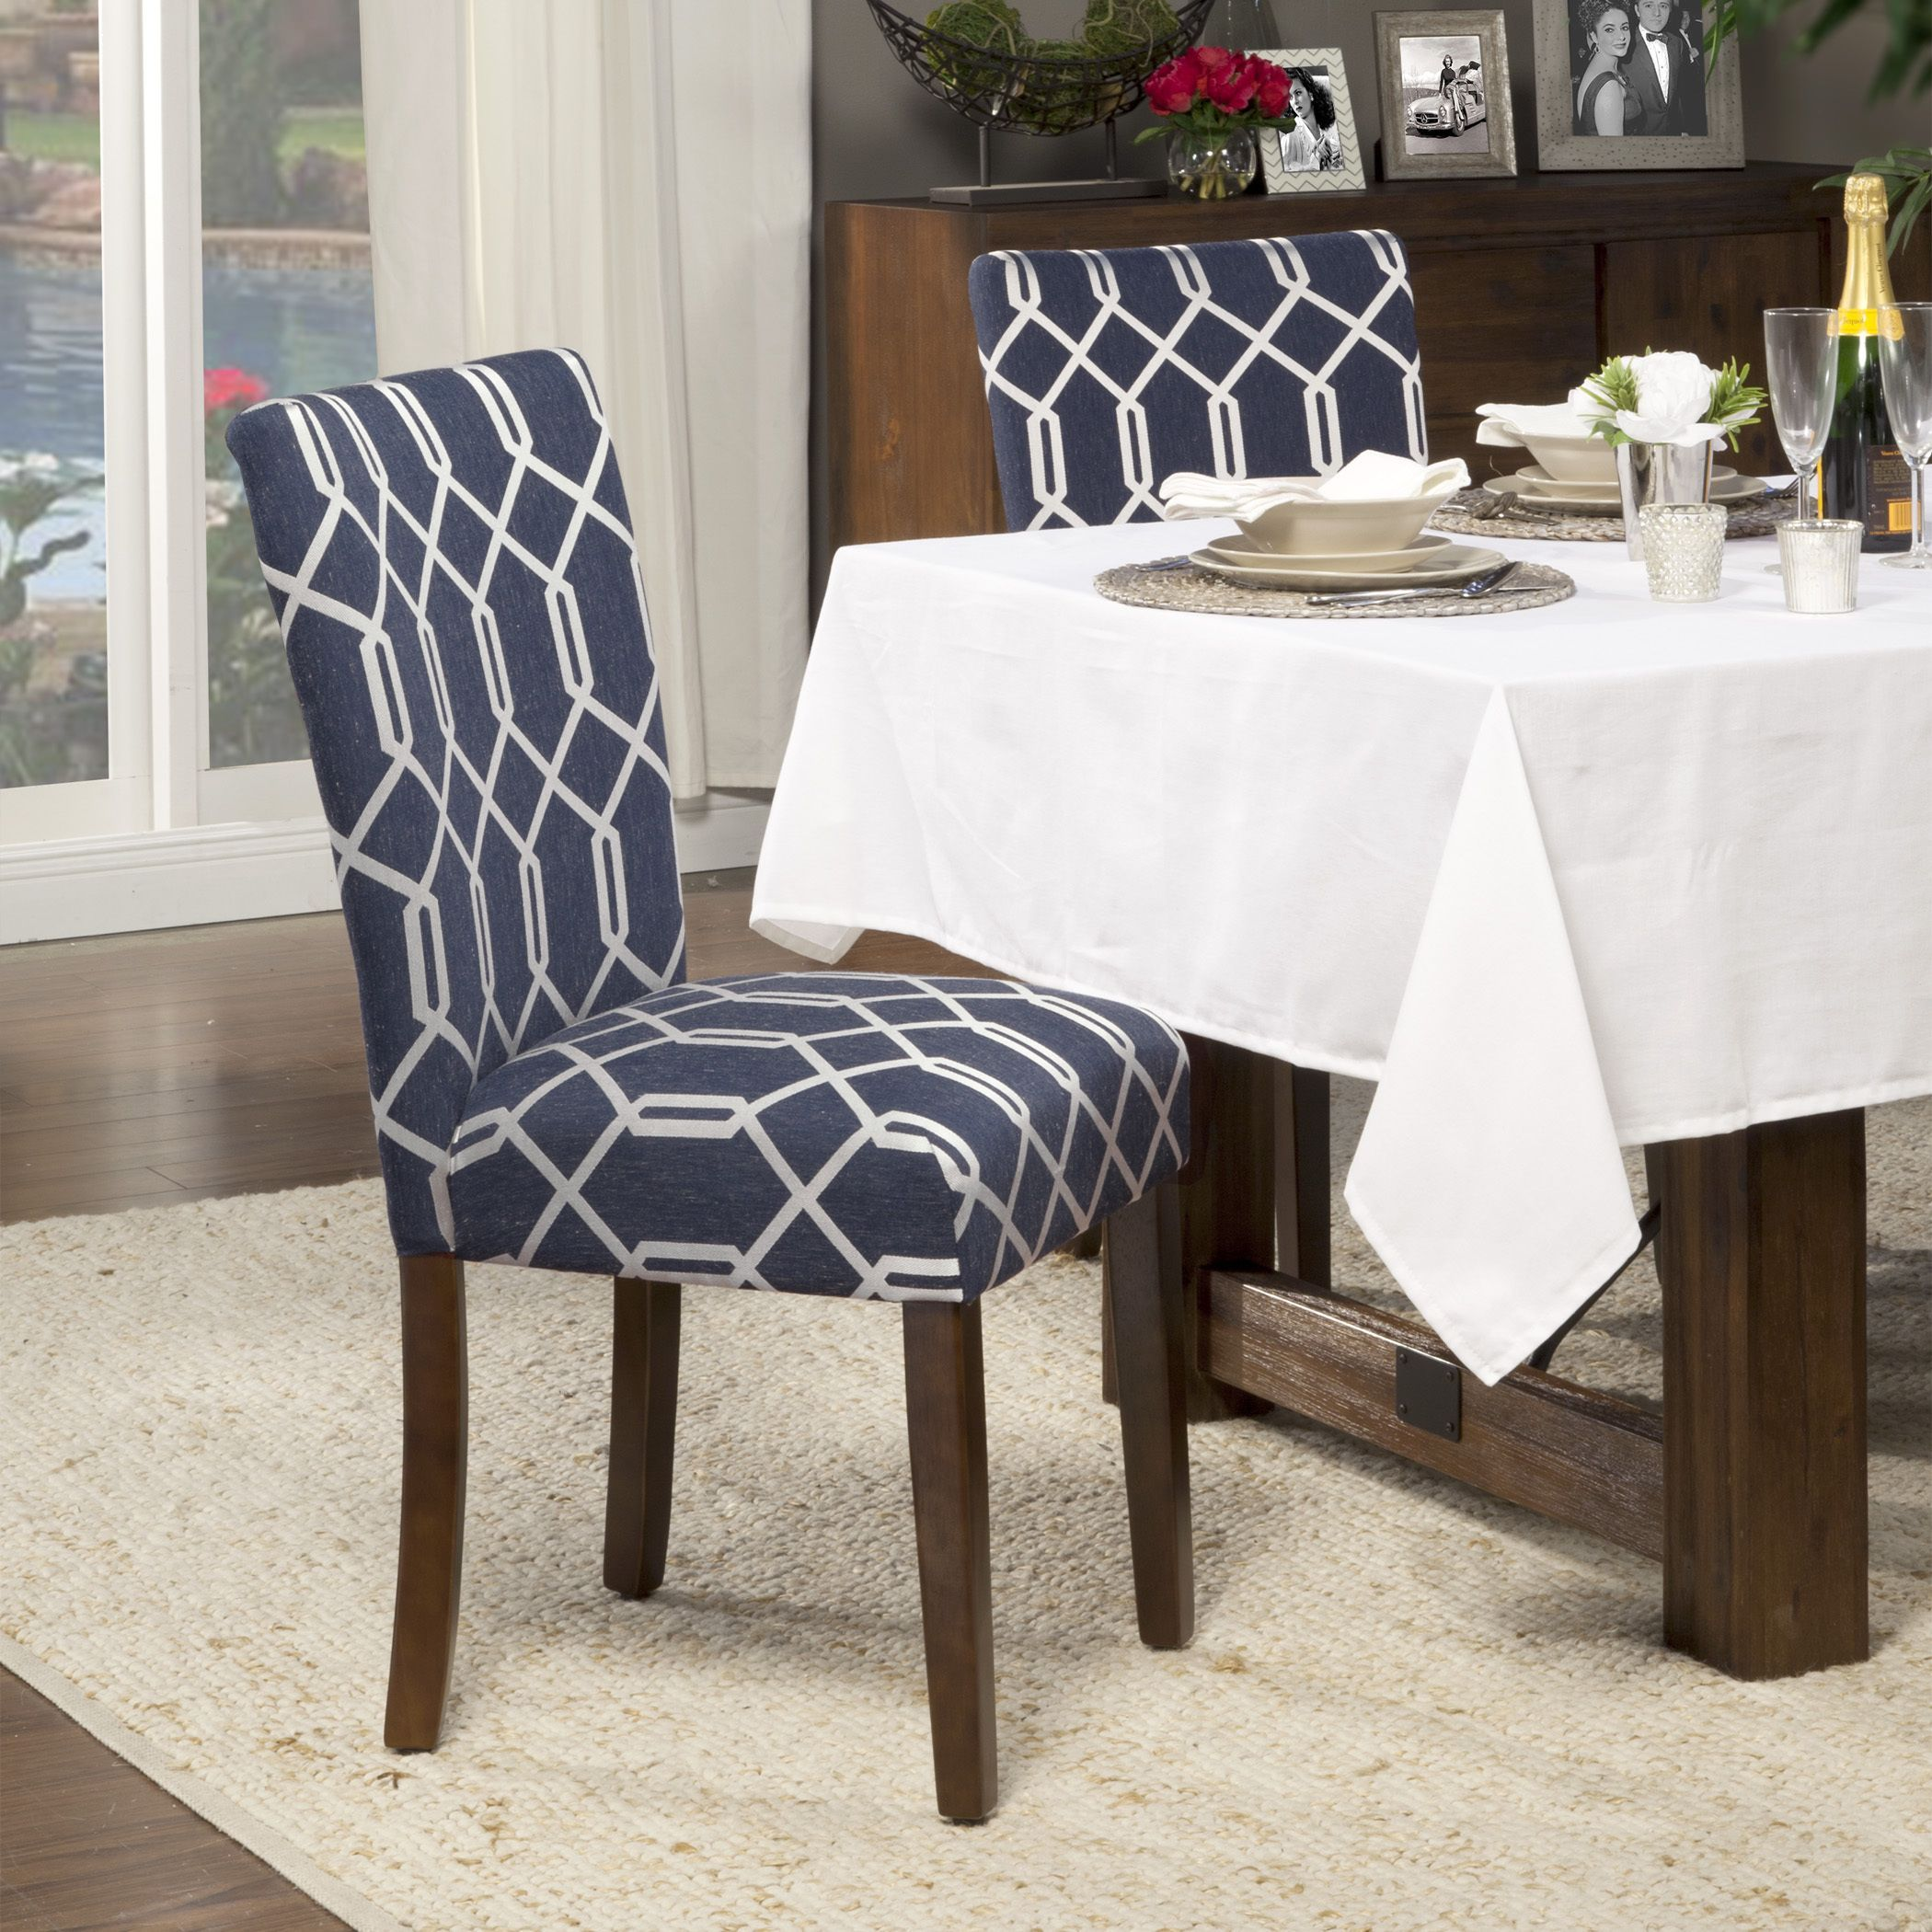 Homepop Navy Blue Cream Lattice Elegance Parson Chairs Set Of 2